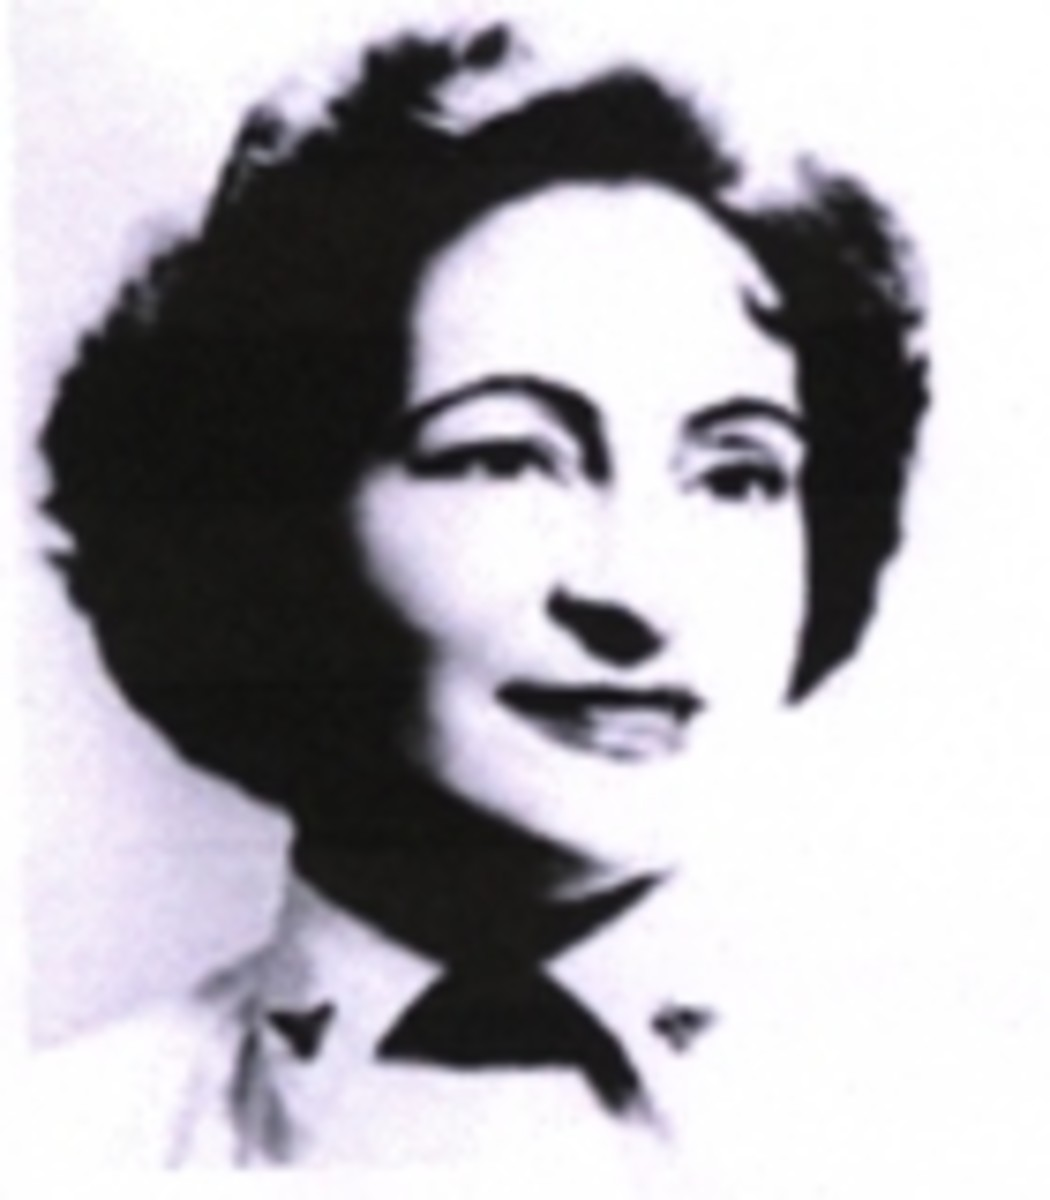 Ada Rogato (Dec. 22, 1920 - Nov. 17, 1986)